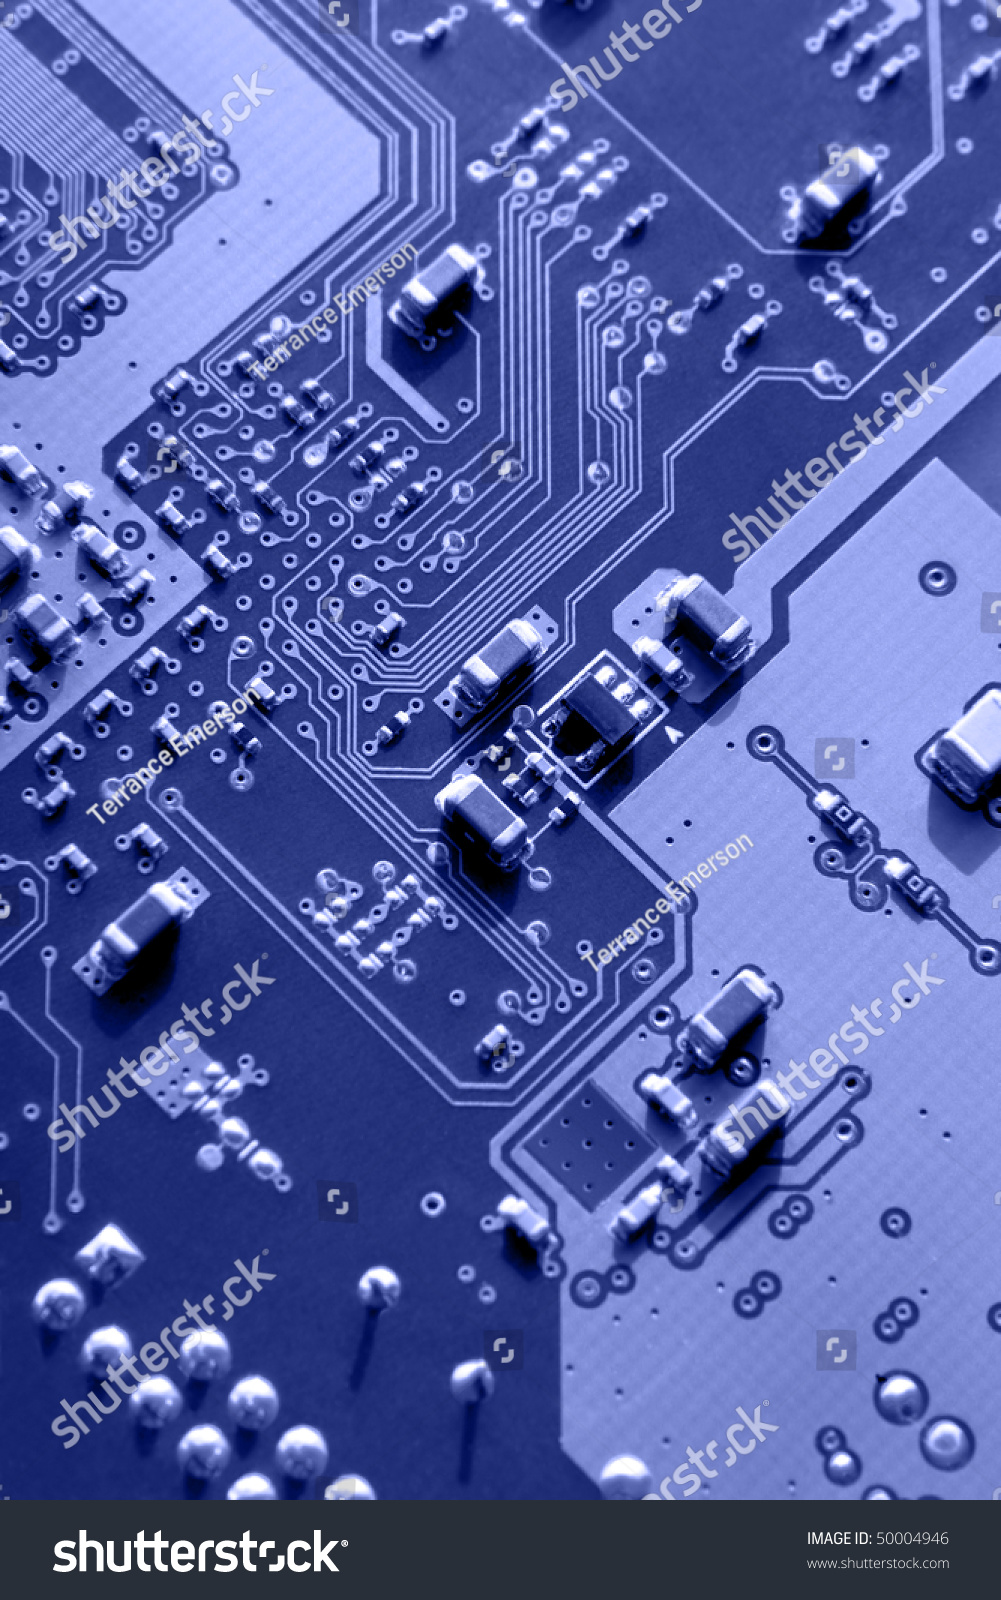 Blue Macro Printed Circuit Board Patterns Stock Photo Edit Now Parts Of A And Electronic Selective Focus According To Rule